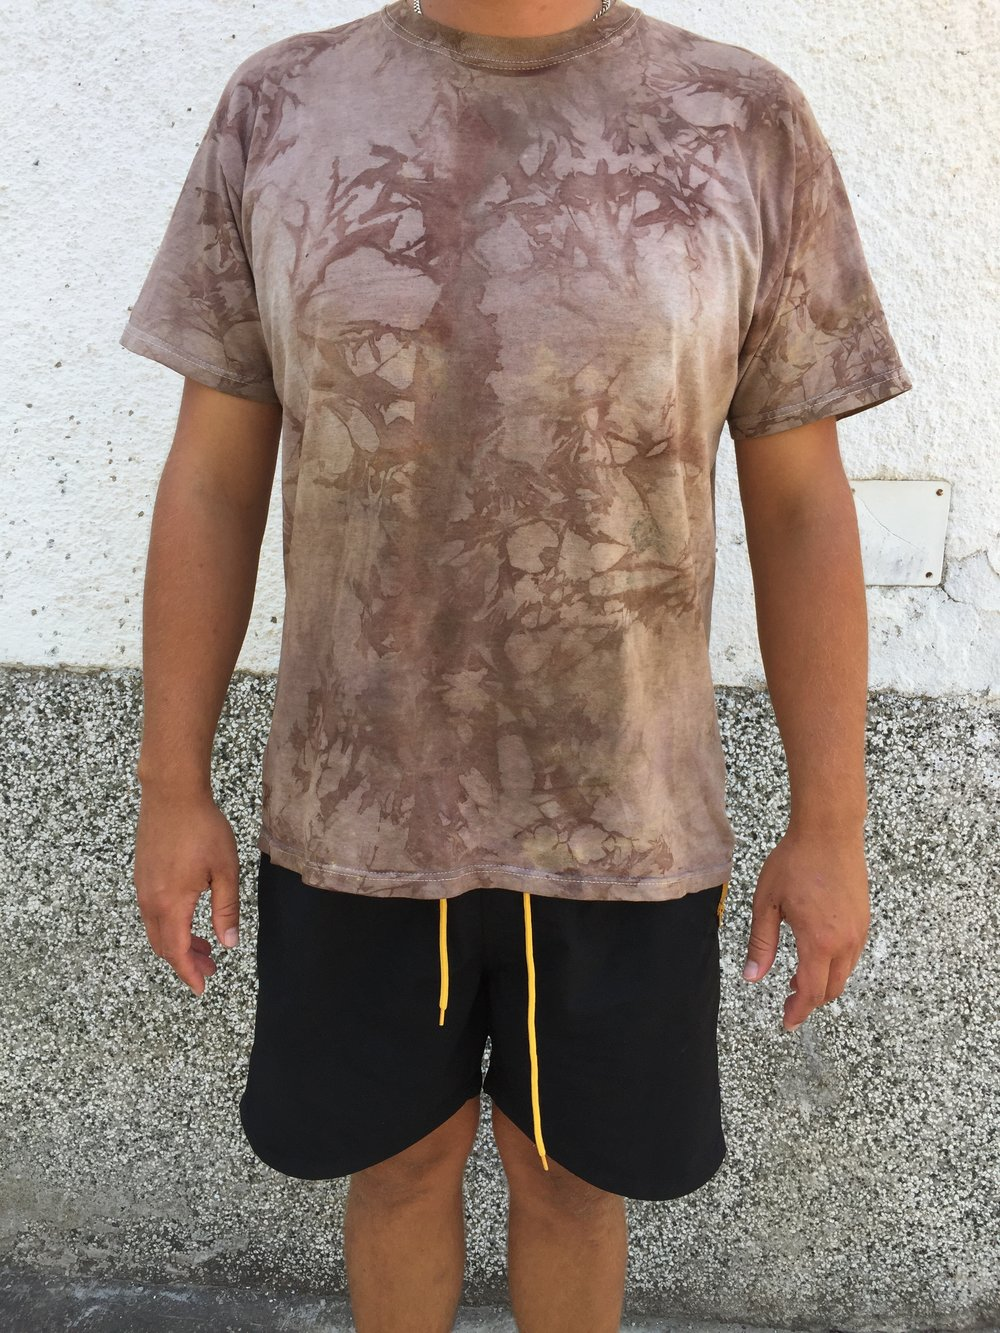 Walnut Dye on T-shirt - Substantive dye